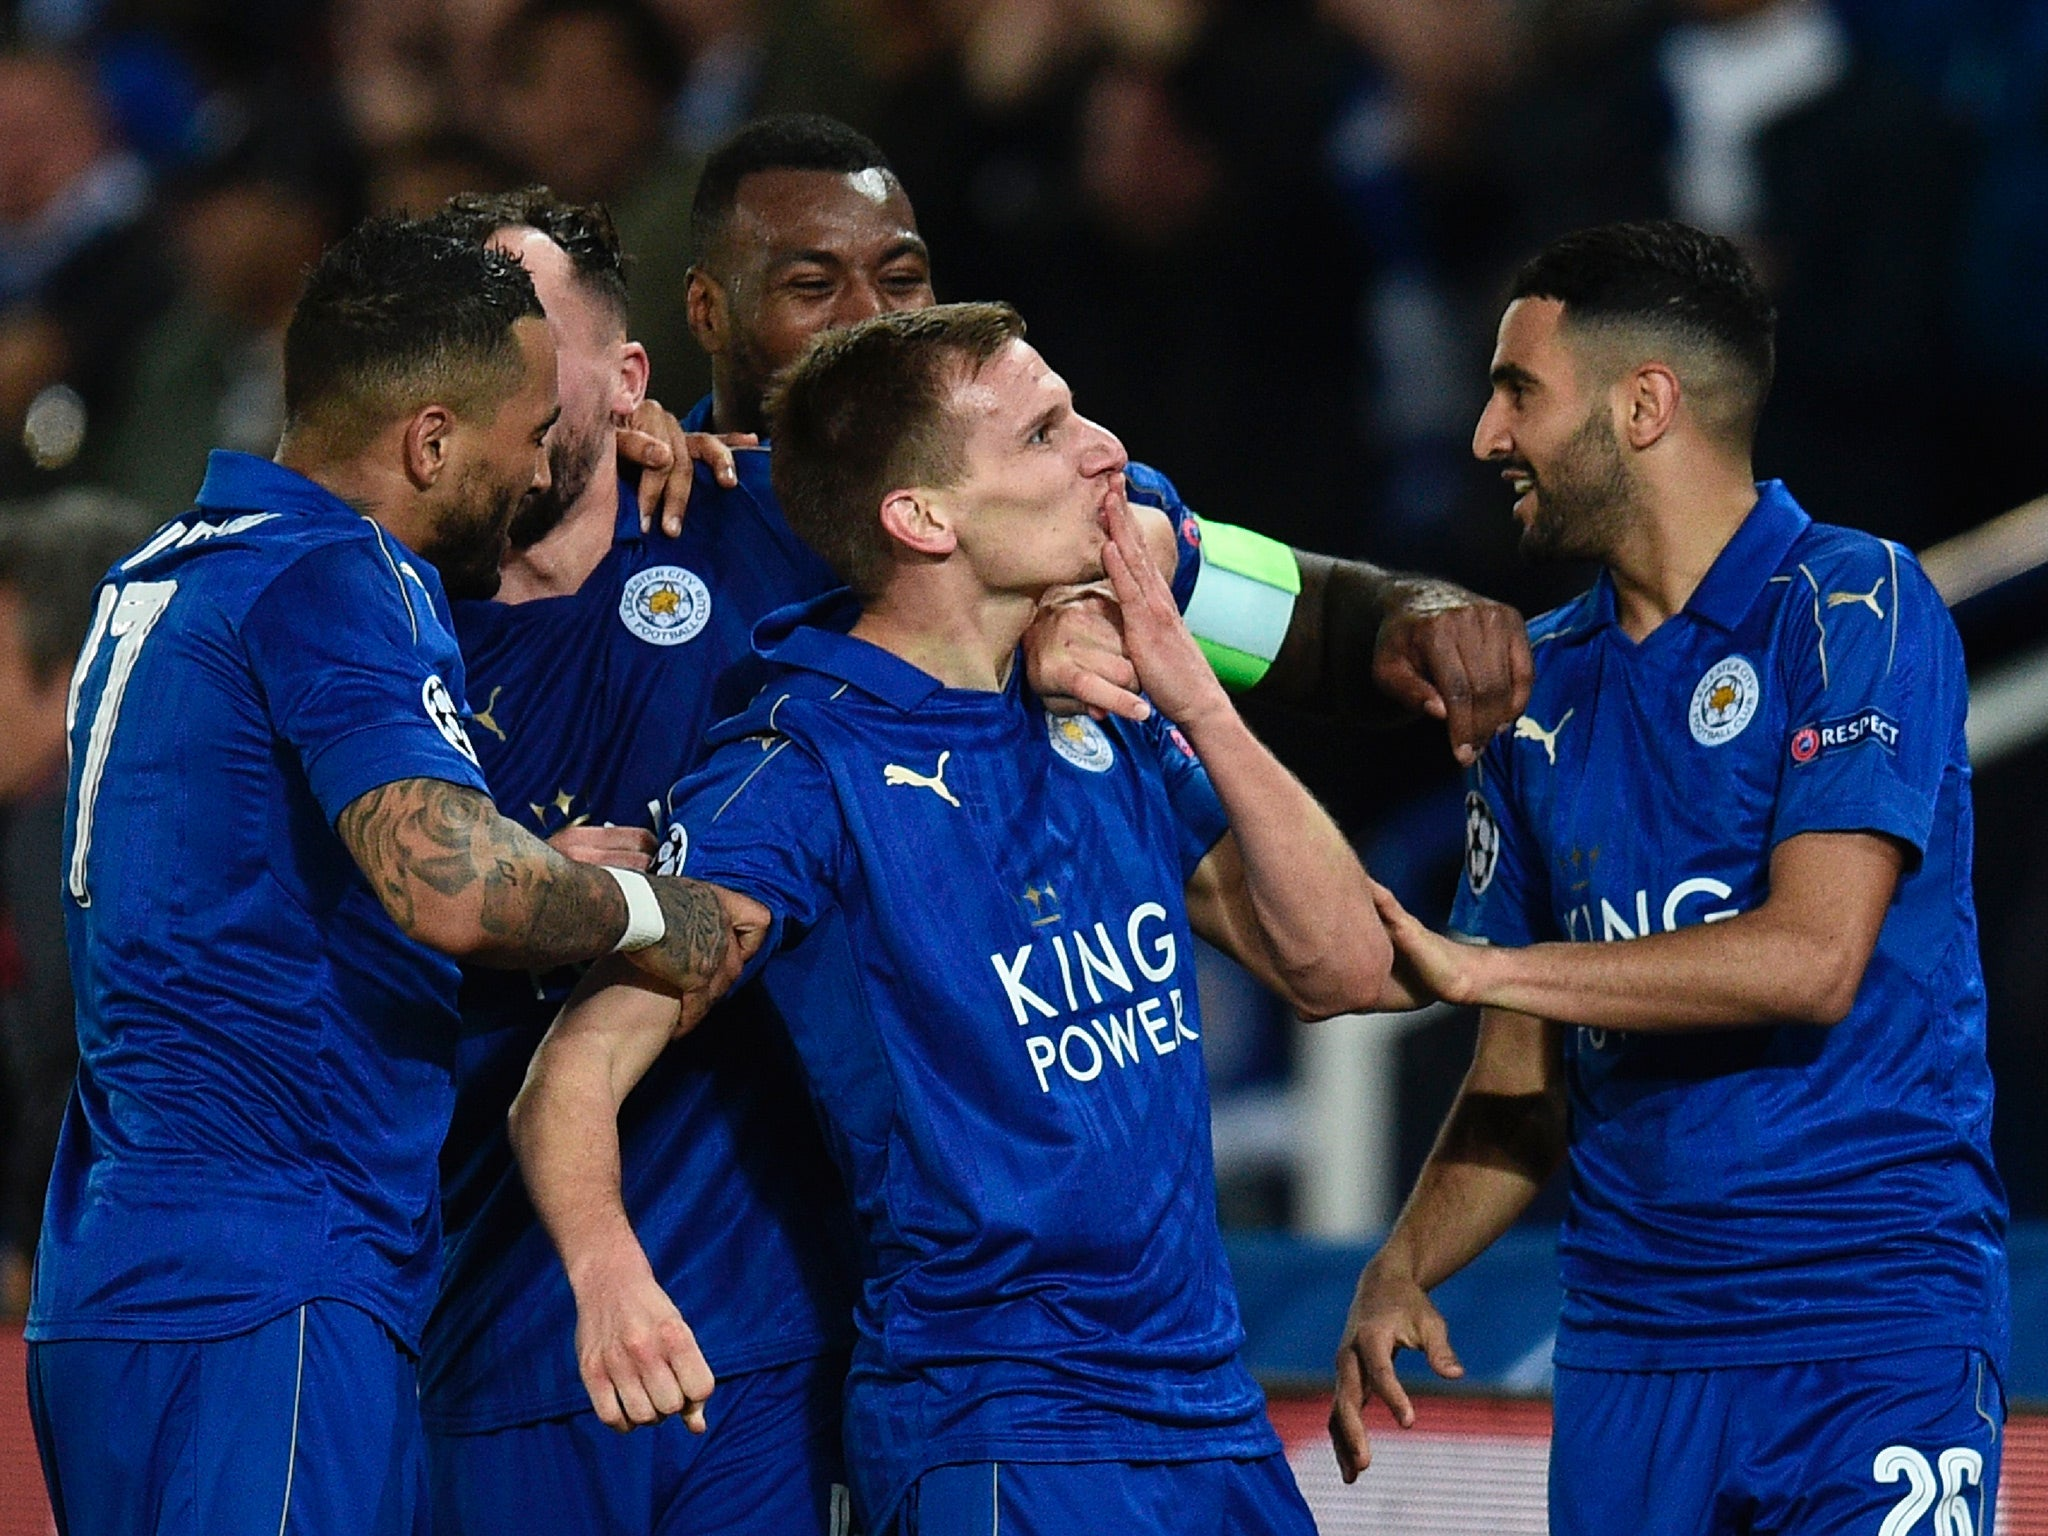 Leicester could teach a thing or two to Arsenal, Tottenham and others when it comes to performing in Europe